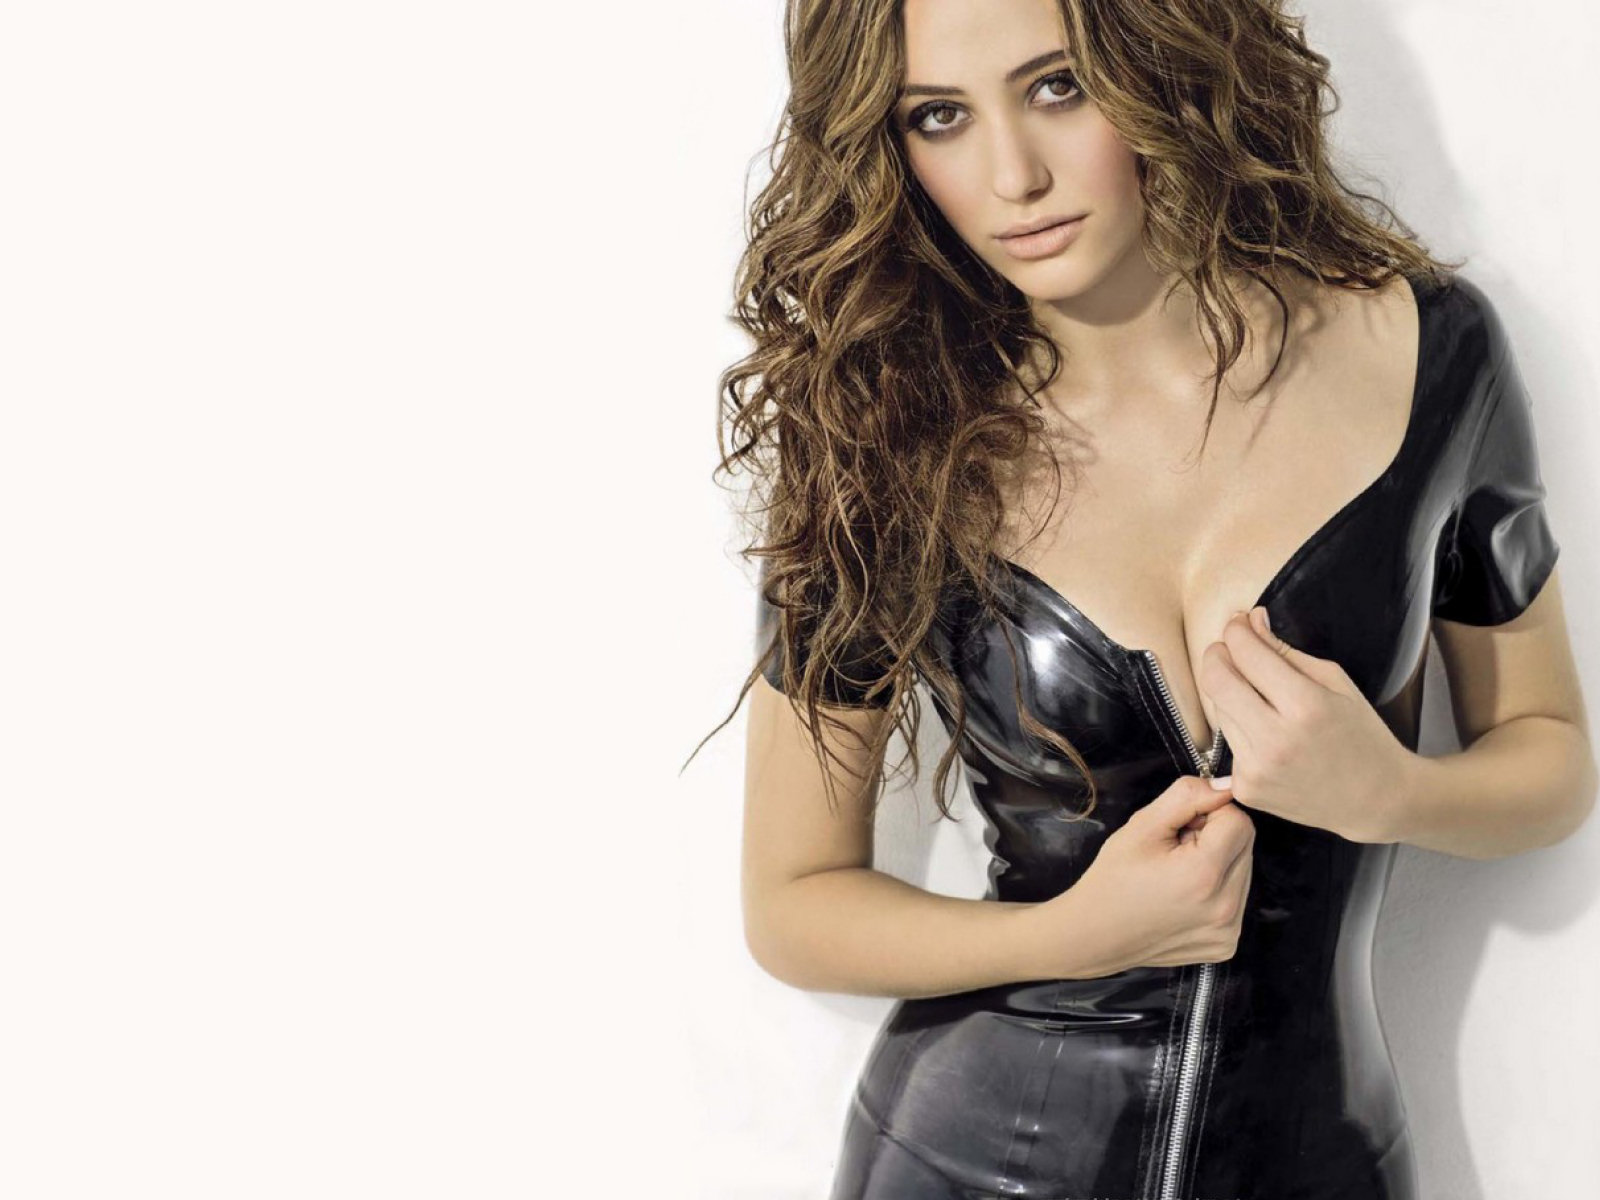 Emmy rossum hd wallpapers 2012 all hollywood stars emmy rossum hd wallpaper voltagebd Gallery